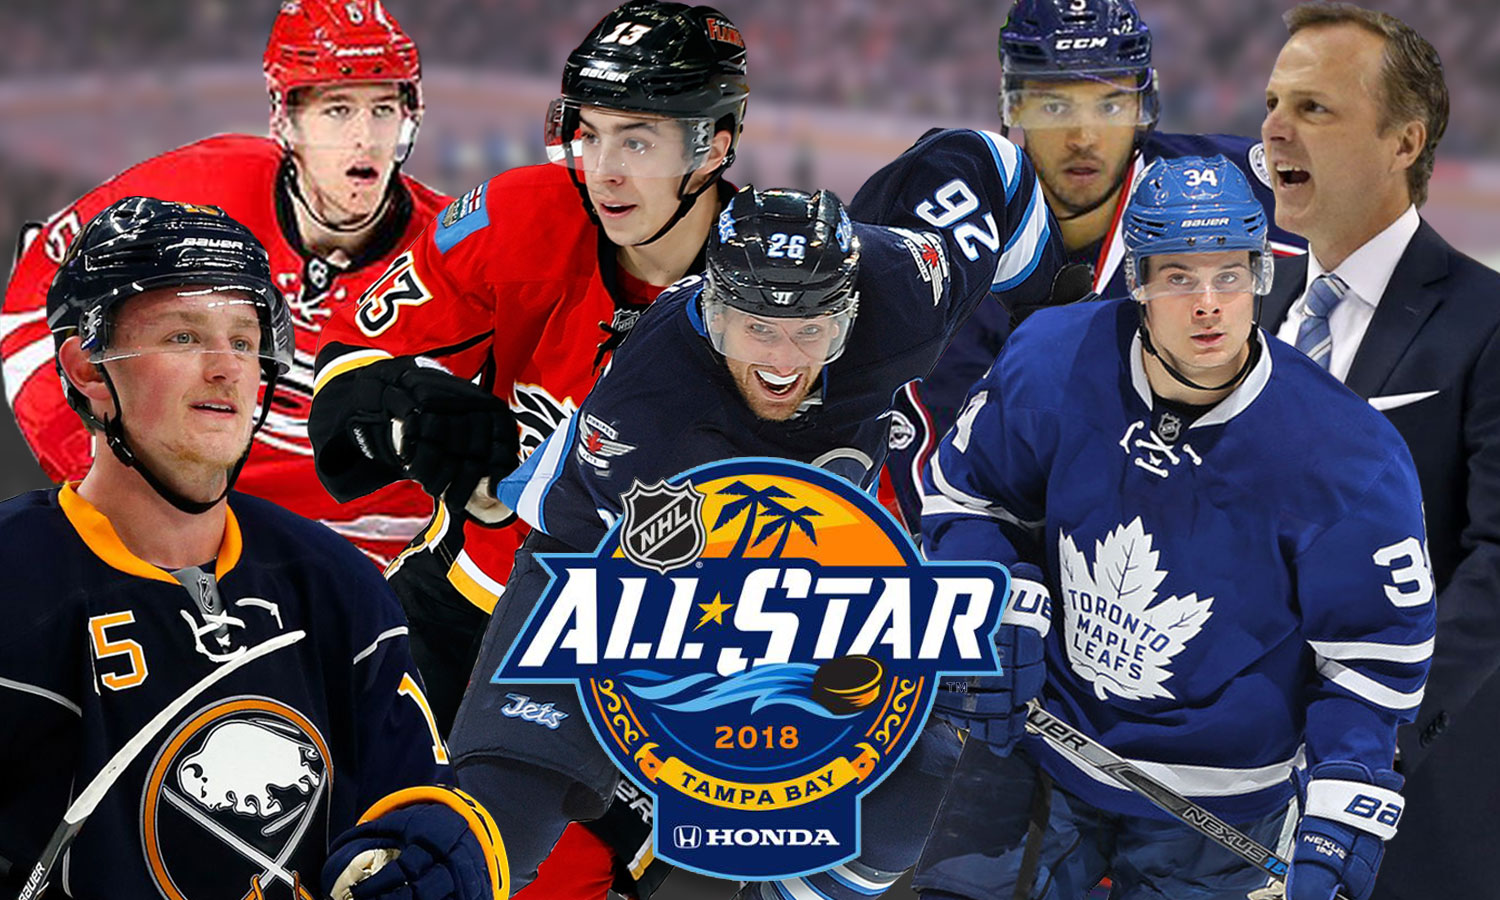 ushl well-represented in nhl all-star game